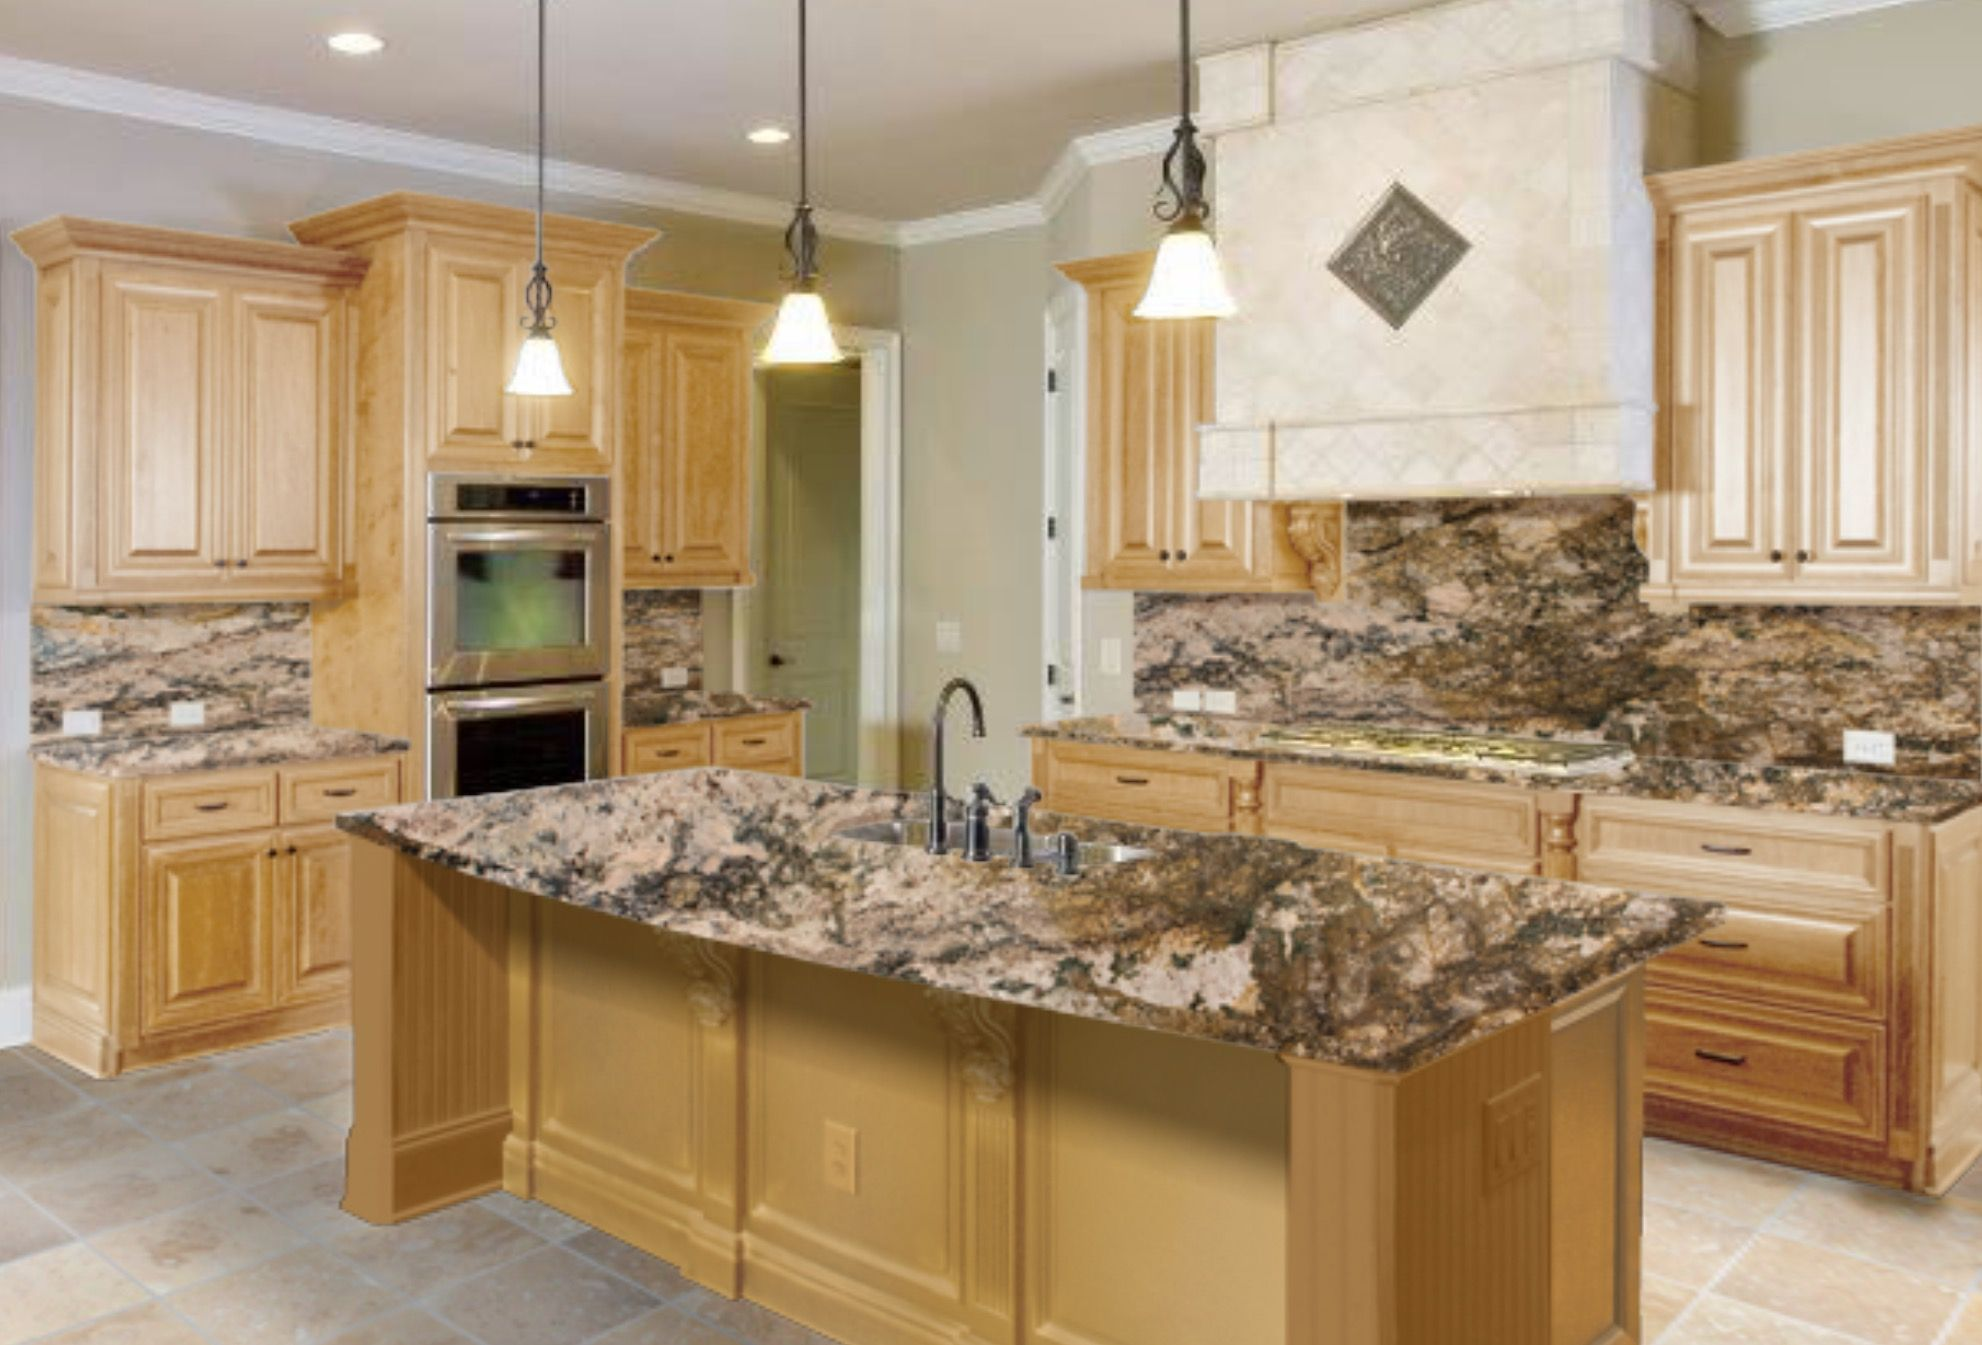 How To Get Granite Countertops Cheap Pin By Arch City On Granite Countertops Pinterest